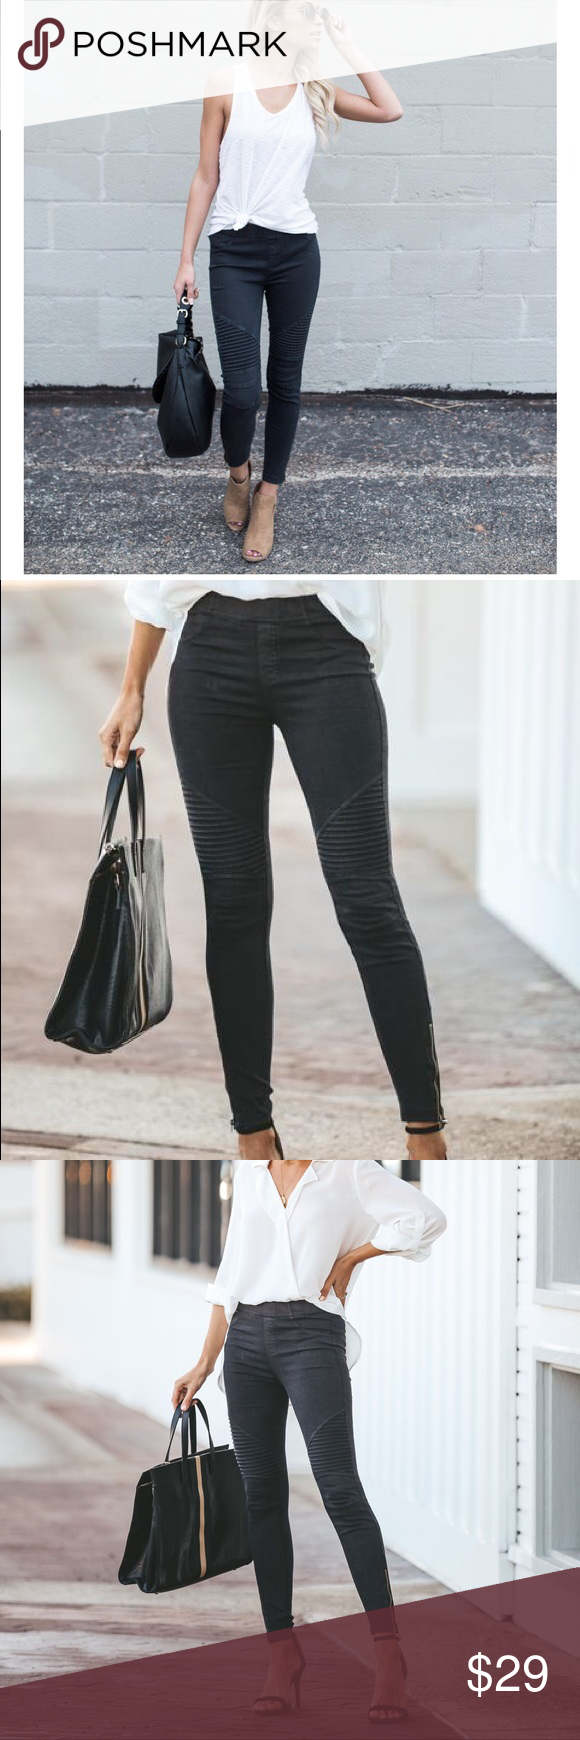 01bccd1644a24f VICI Piper Jegging - Black Our bestselling moto jegging, a coveted  favorite! Our Piper